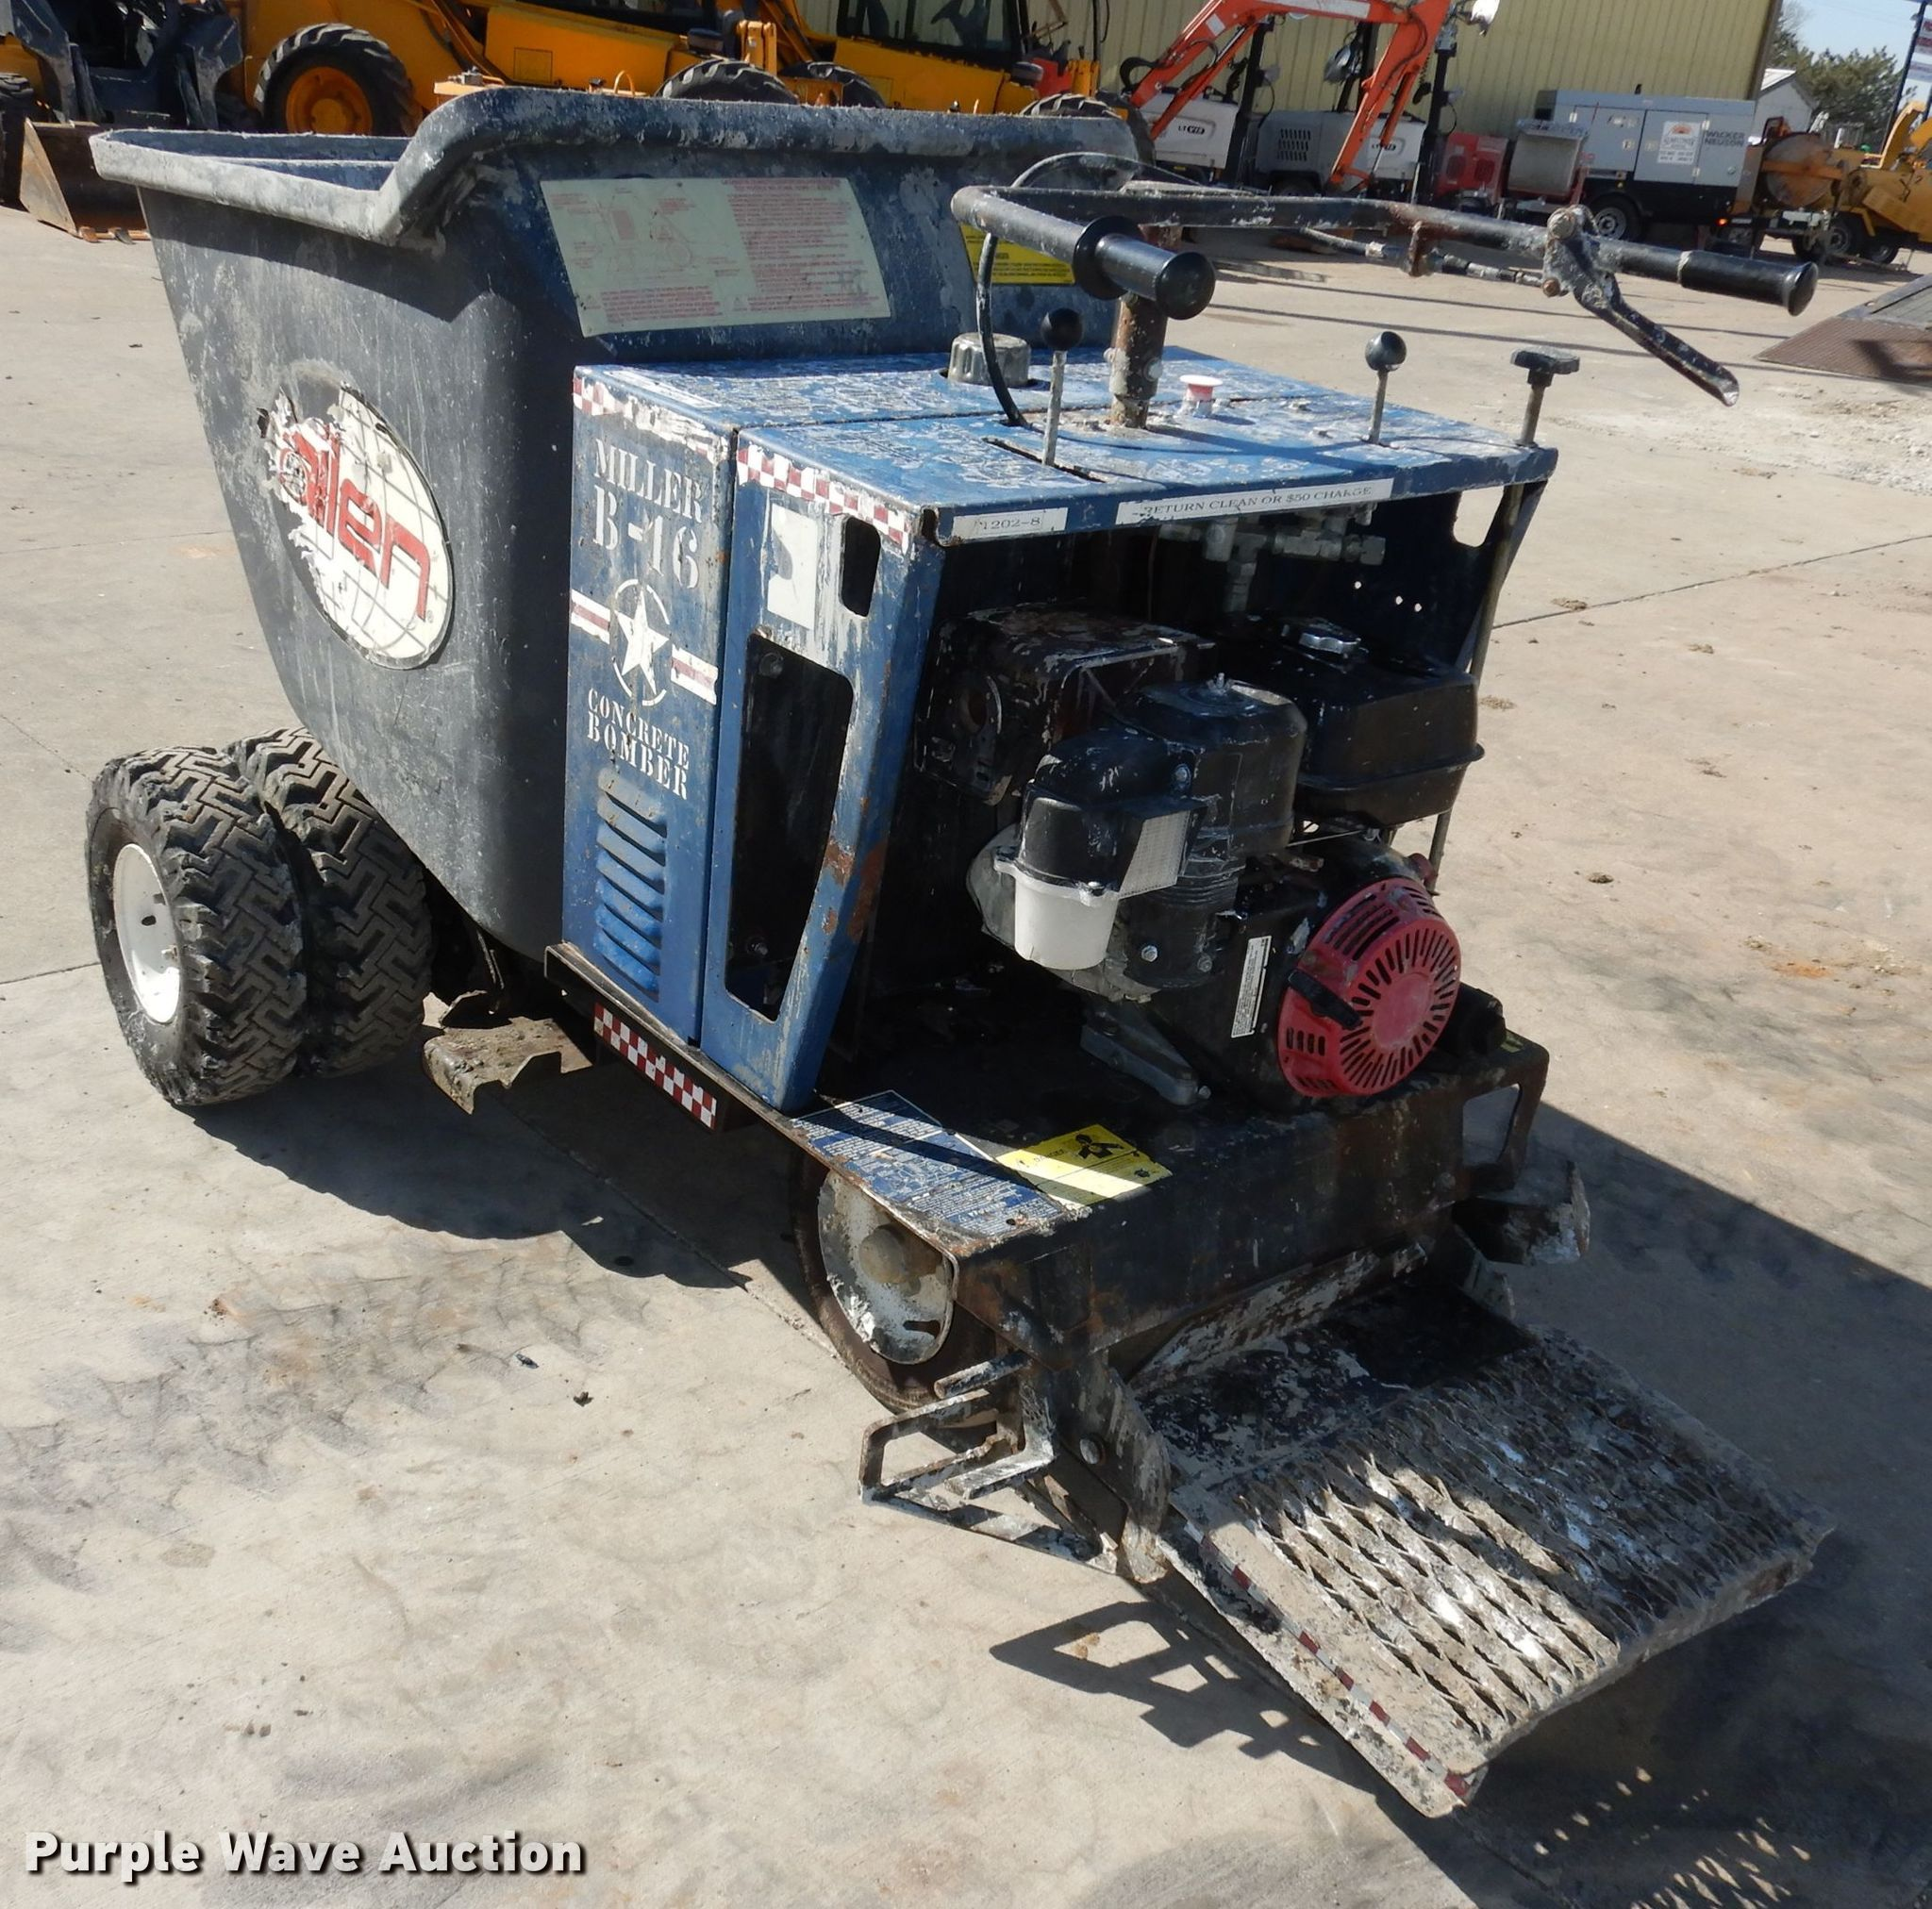 Miller B16 Concrete Bomber Power Buggy  for sale or rent sunflower equipment rentals topeka lawrence kansas blue springs missouri